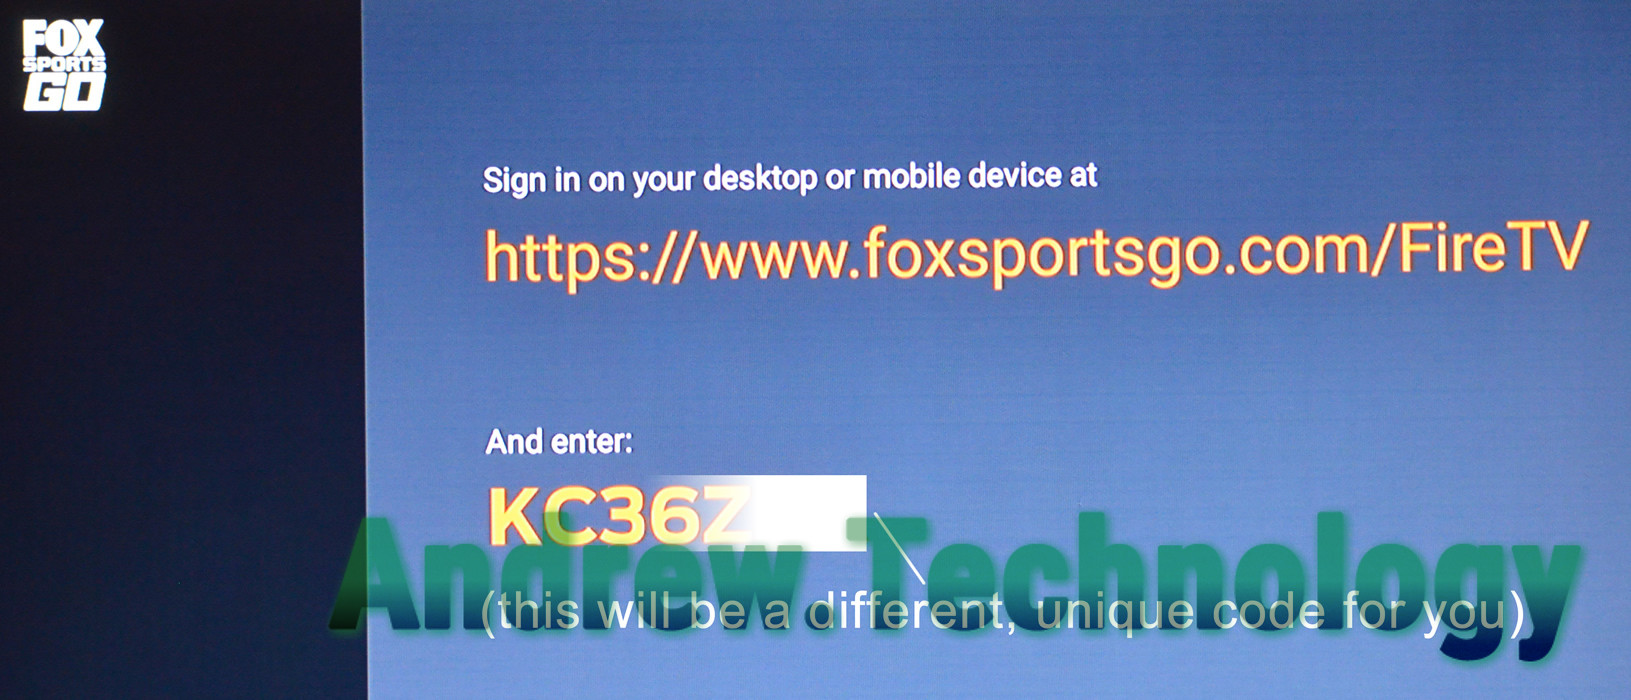 Sign in on your desktop or mobile device at https://www.foxsportsgo.com/FireTV